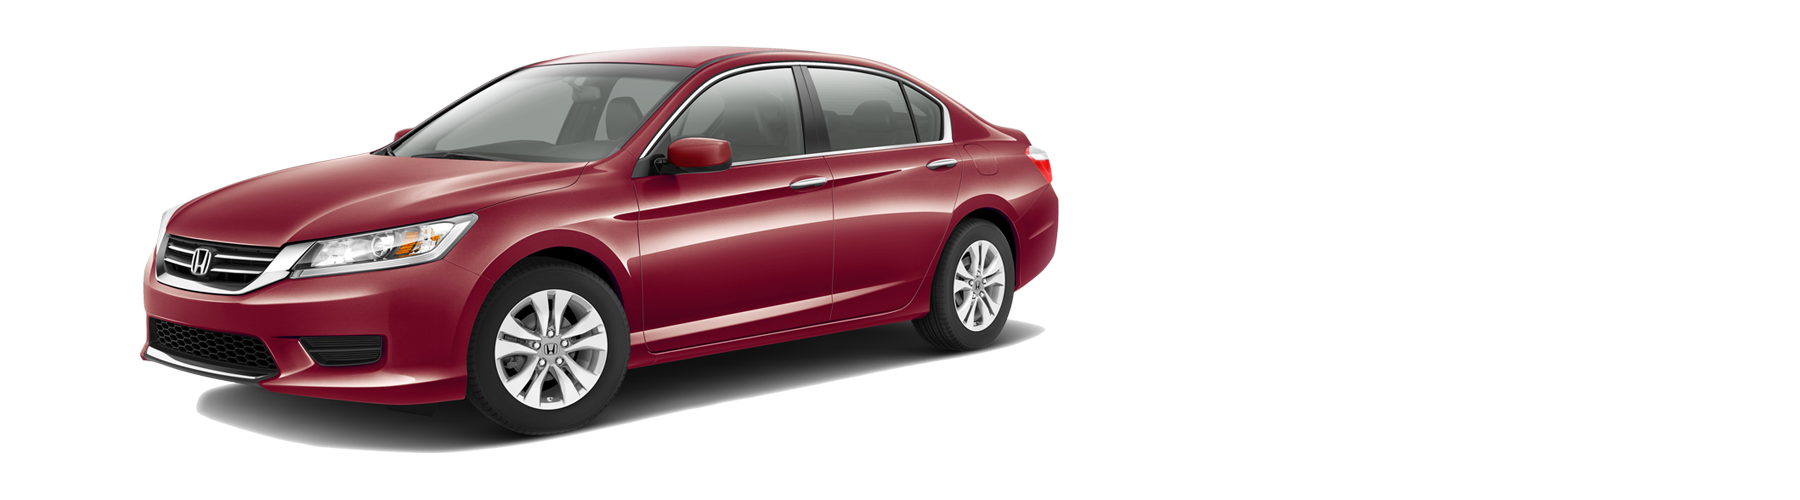 Certified Pre Owned Lexus Spokane >> Lynnwood Honda Honda Dealers Serving Seattle | 2017/2018/2019 Honda Reviews